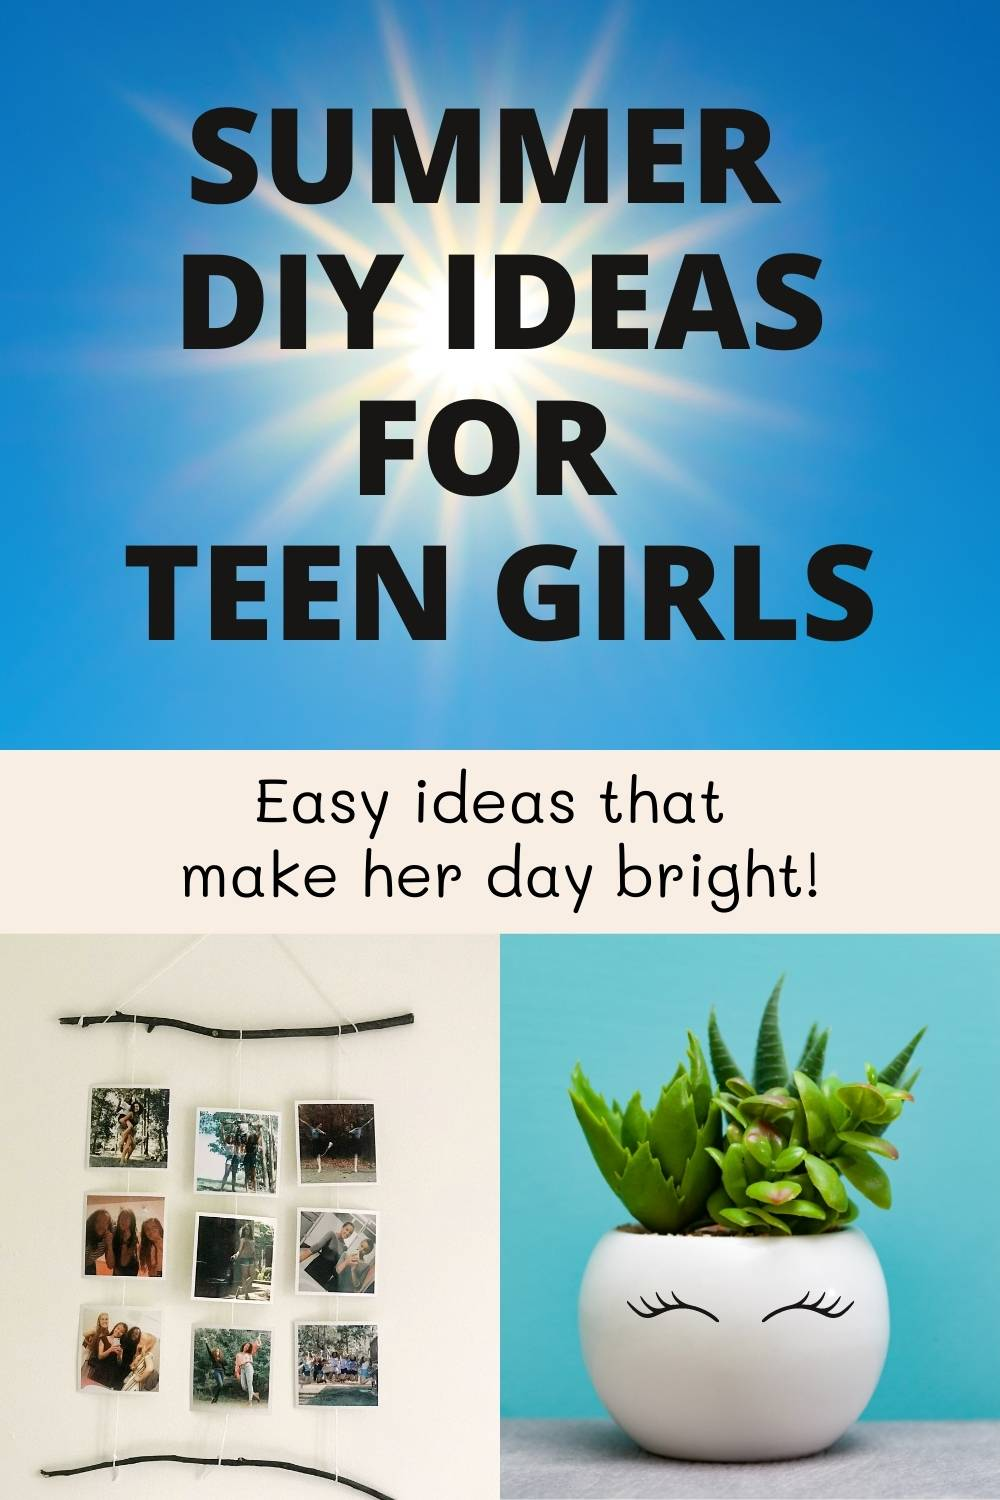 Summer DIY Ideas for Teenage Girls. Easy ideas that make her day bright. Photo display, flower pot with eyelashes.